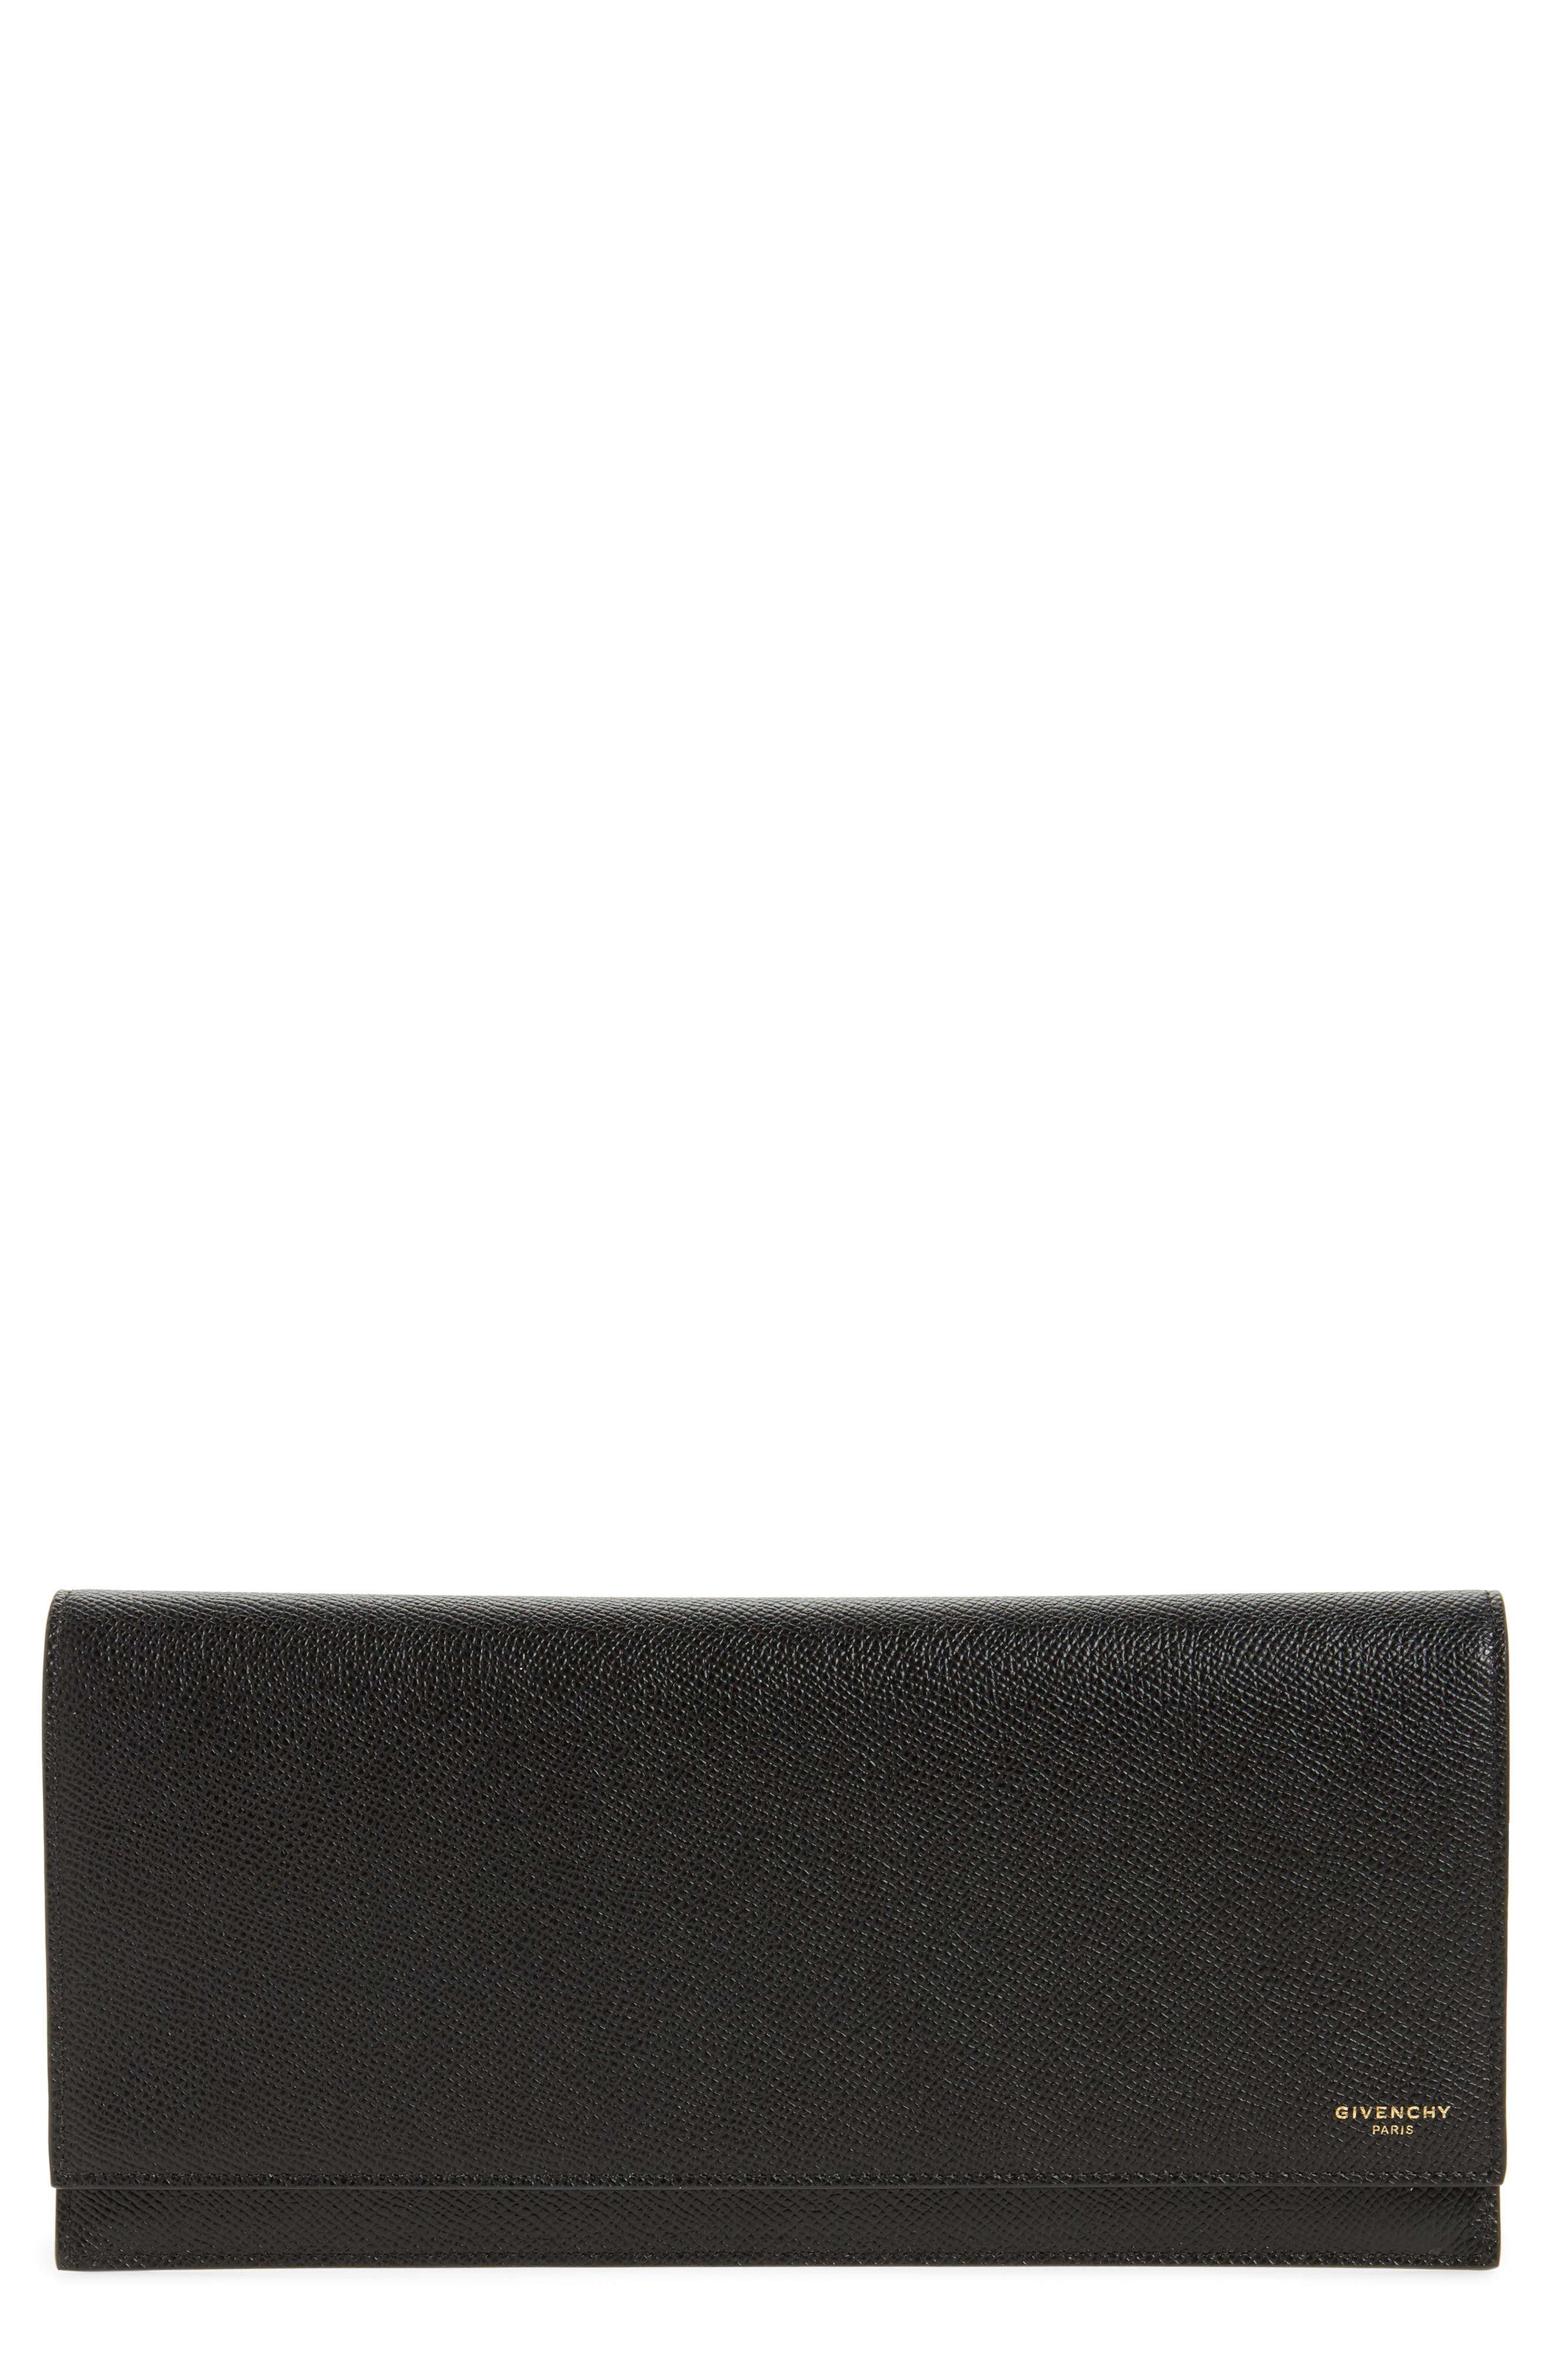 Givenchy Leather Travel Pouch